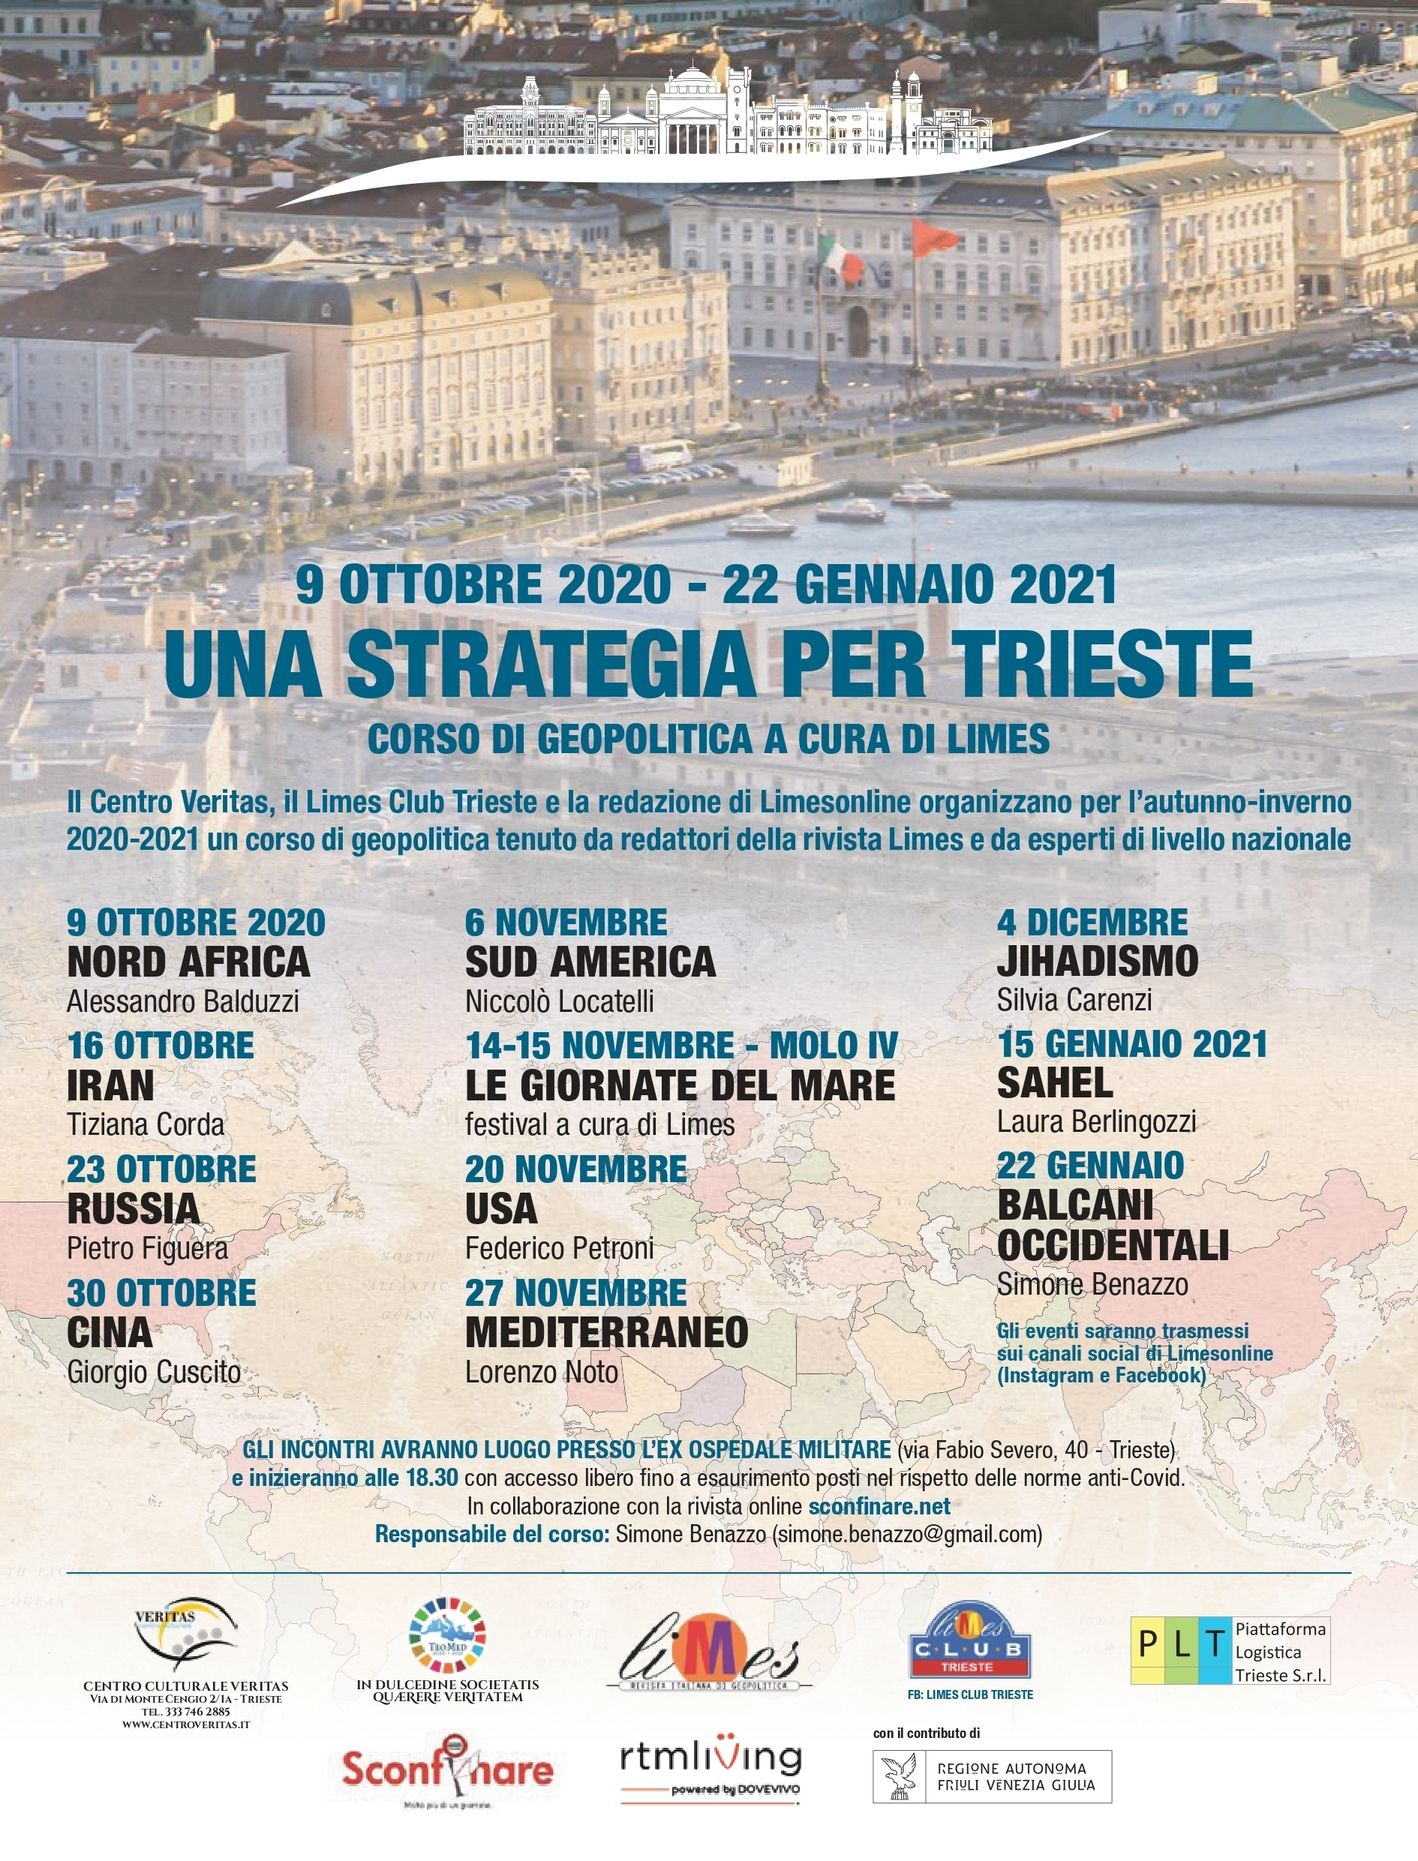 Una strategia per Trieste